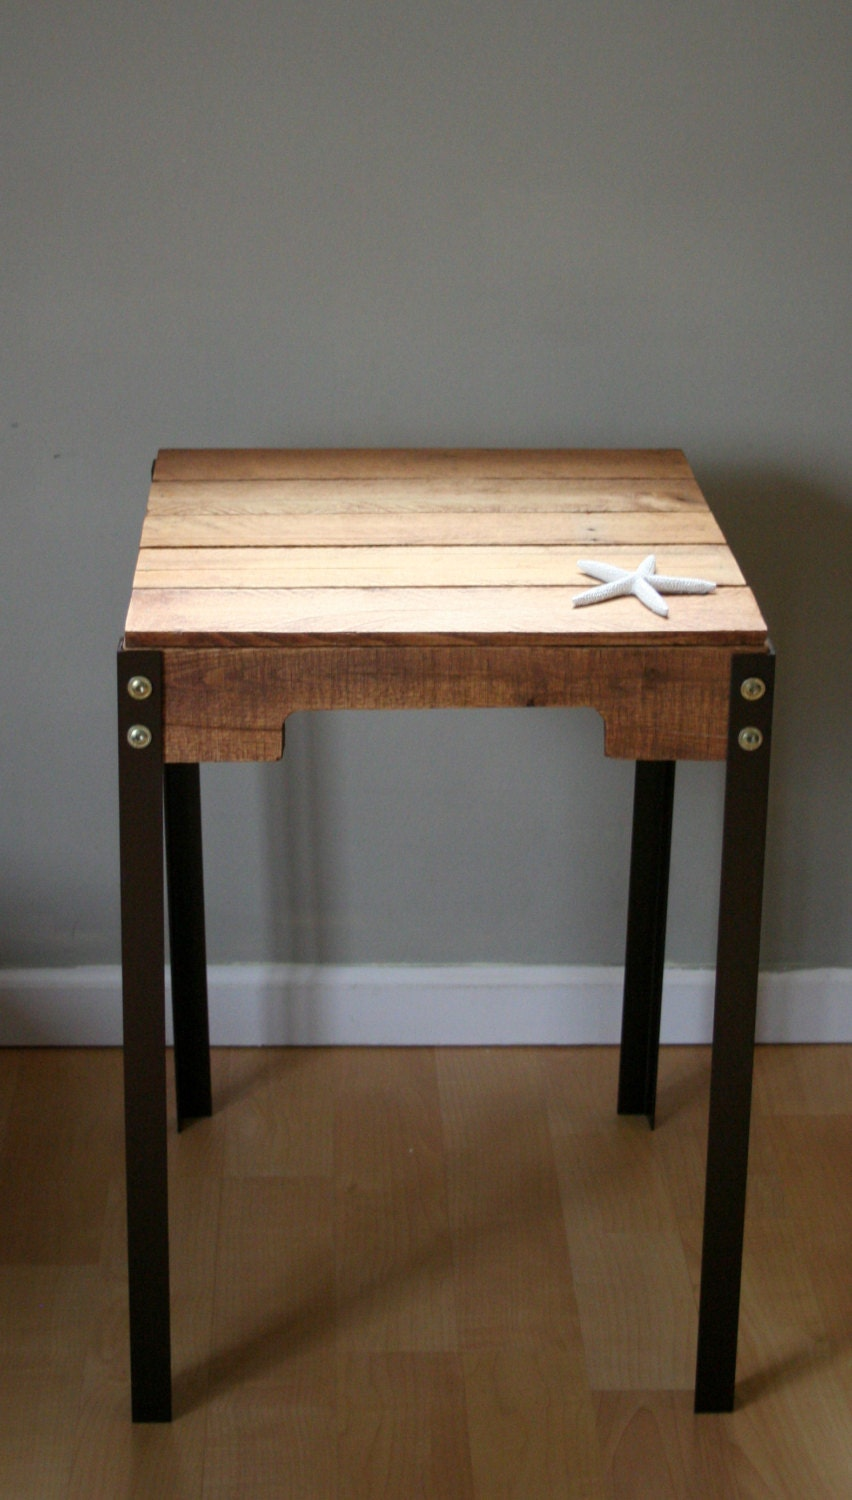 ... Table Legs additionally Rustic Reclaimed Wood Side Table likewise